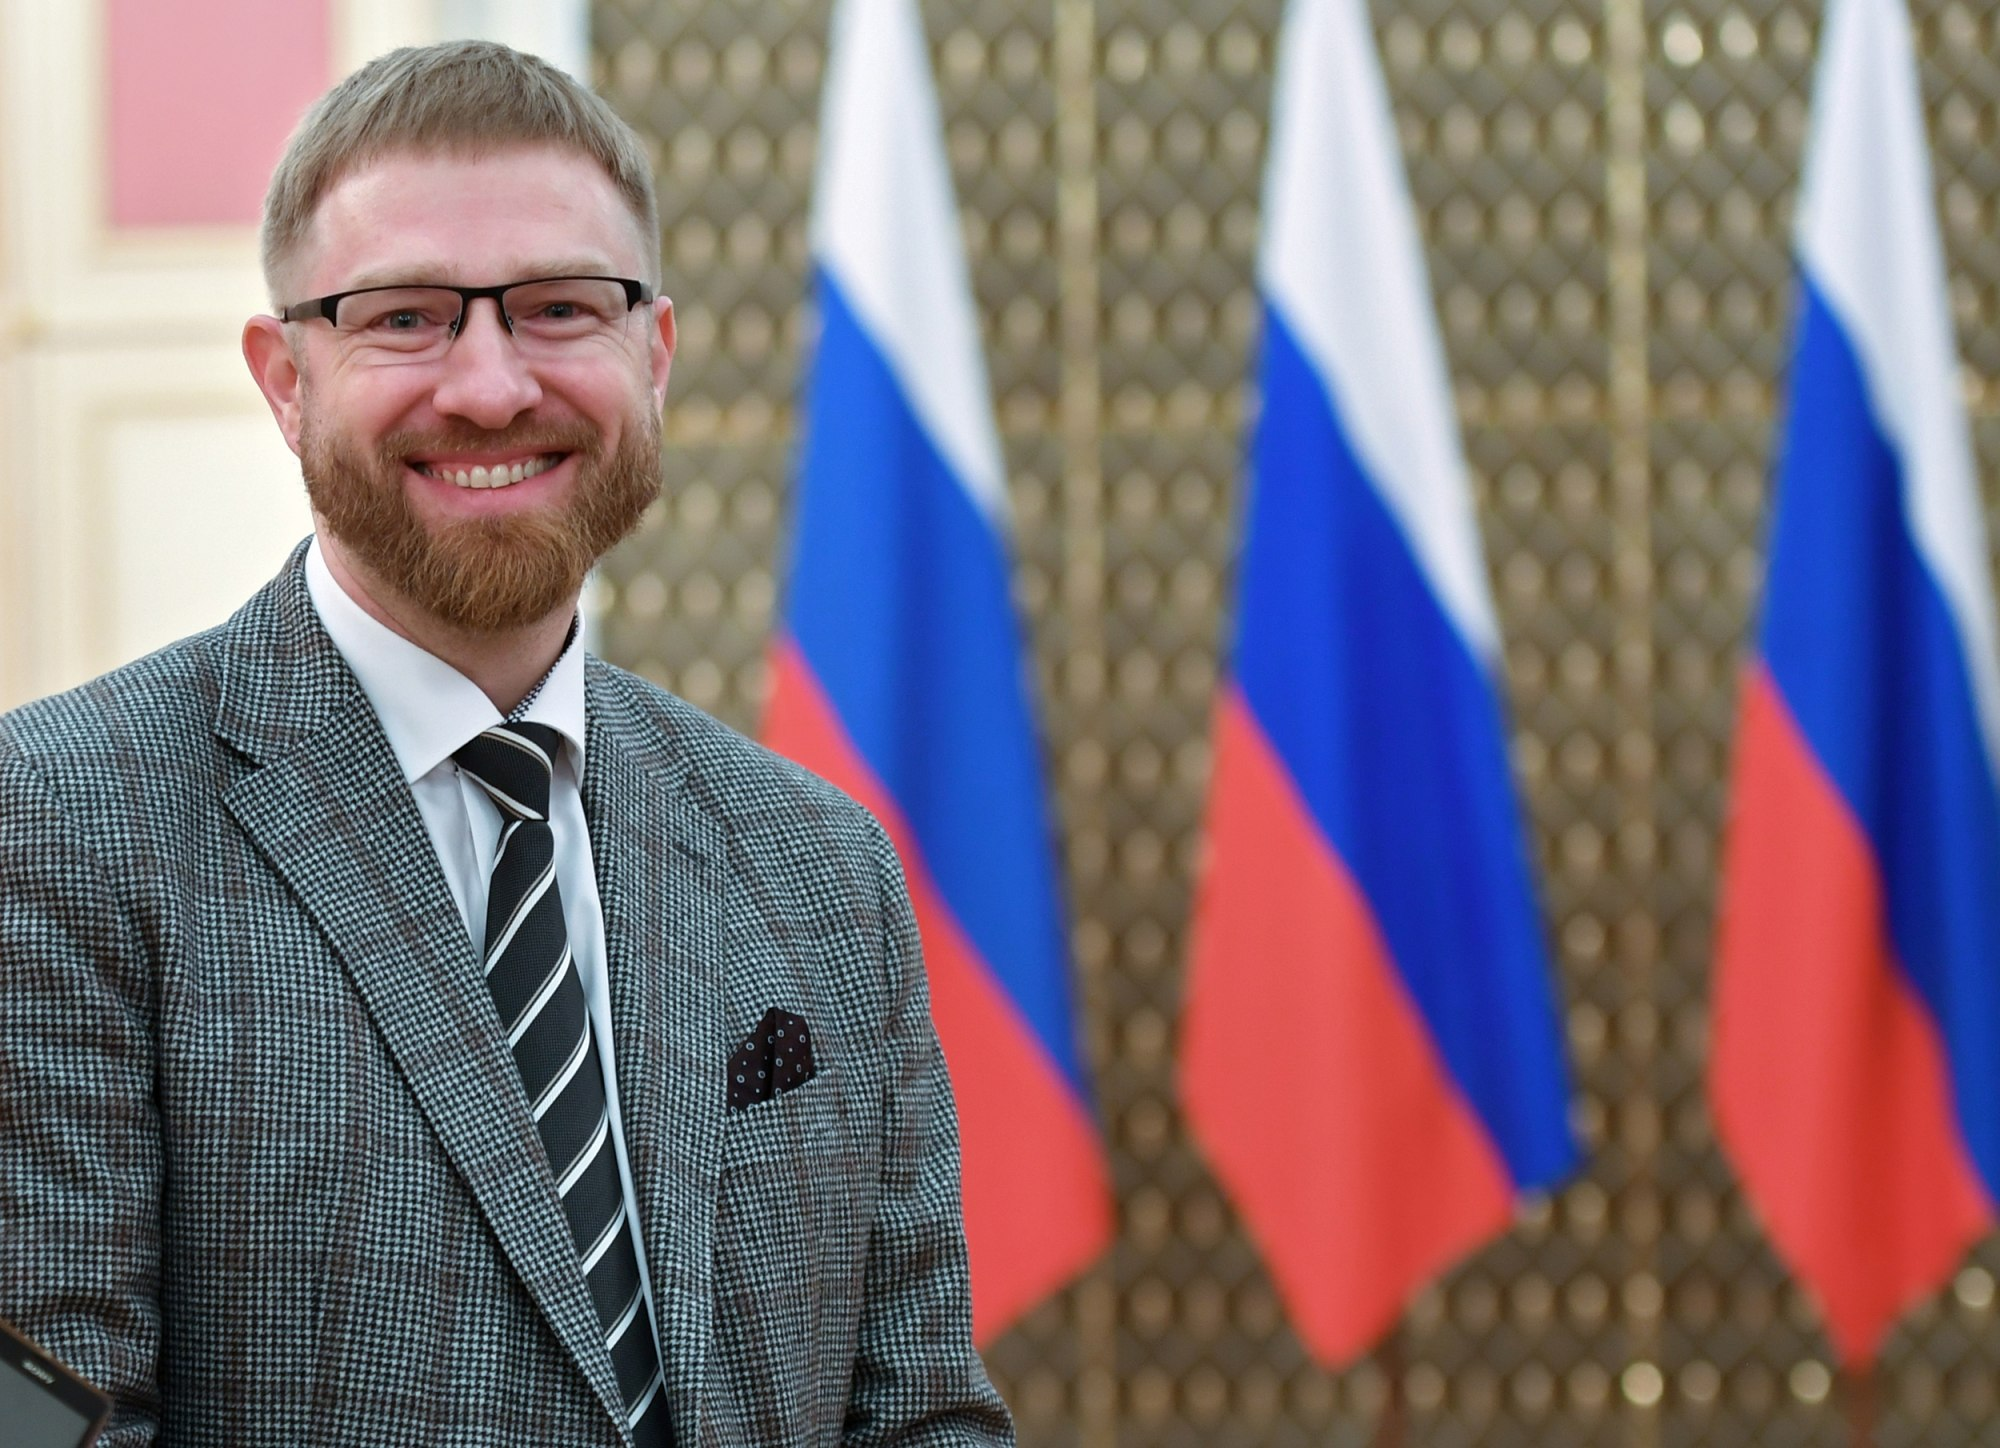 Alexander Malkevich at a ceremony to present Russian government awards in culture at the Russian Government House on March 21.